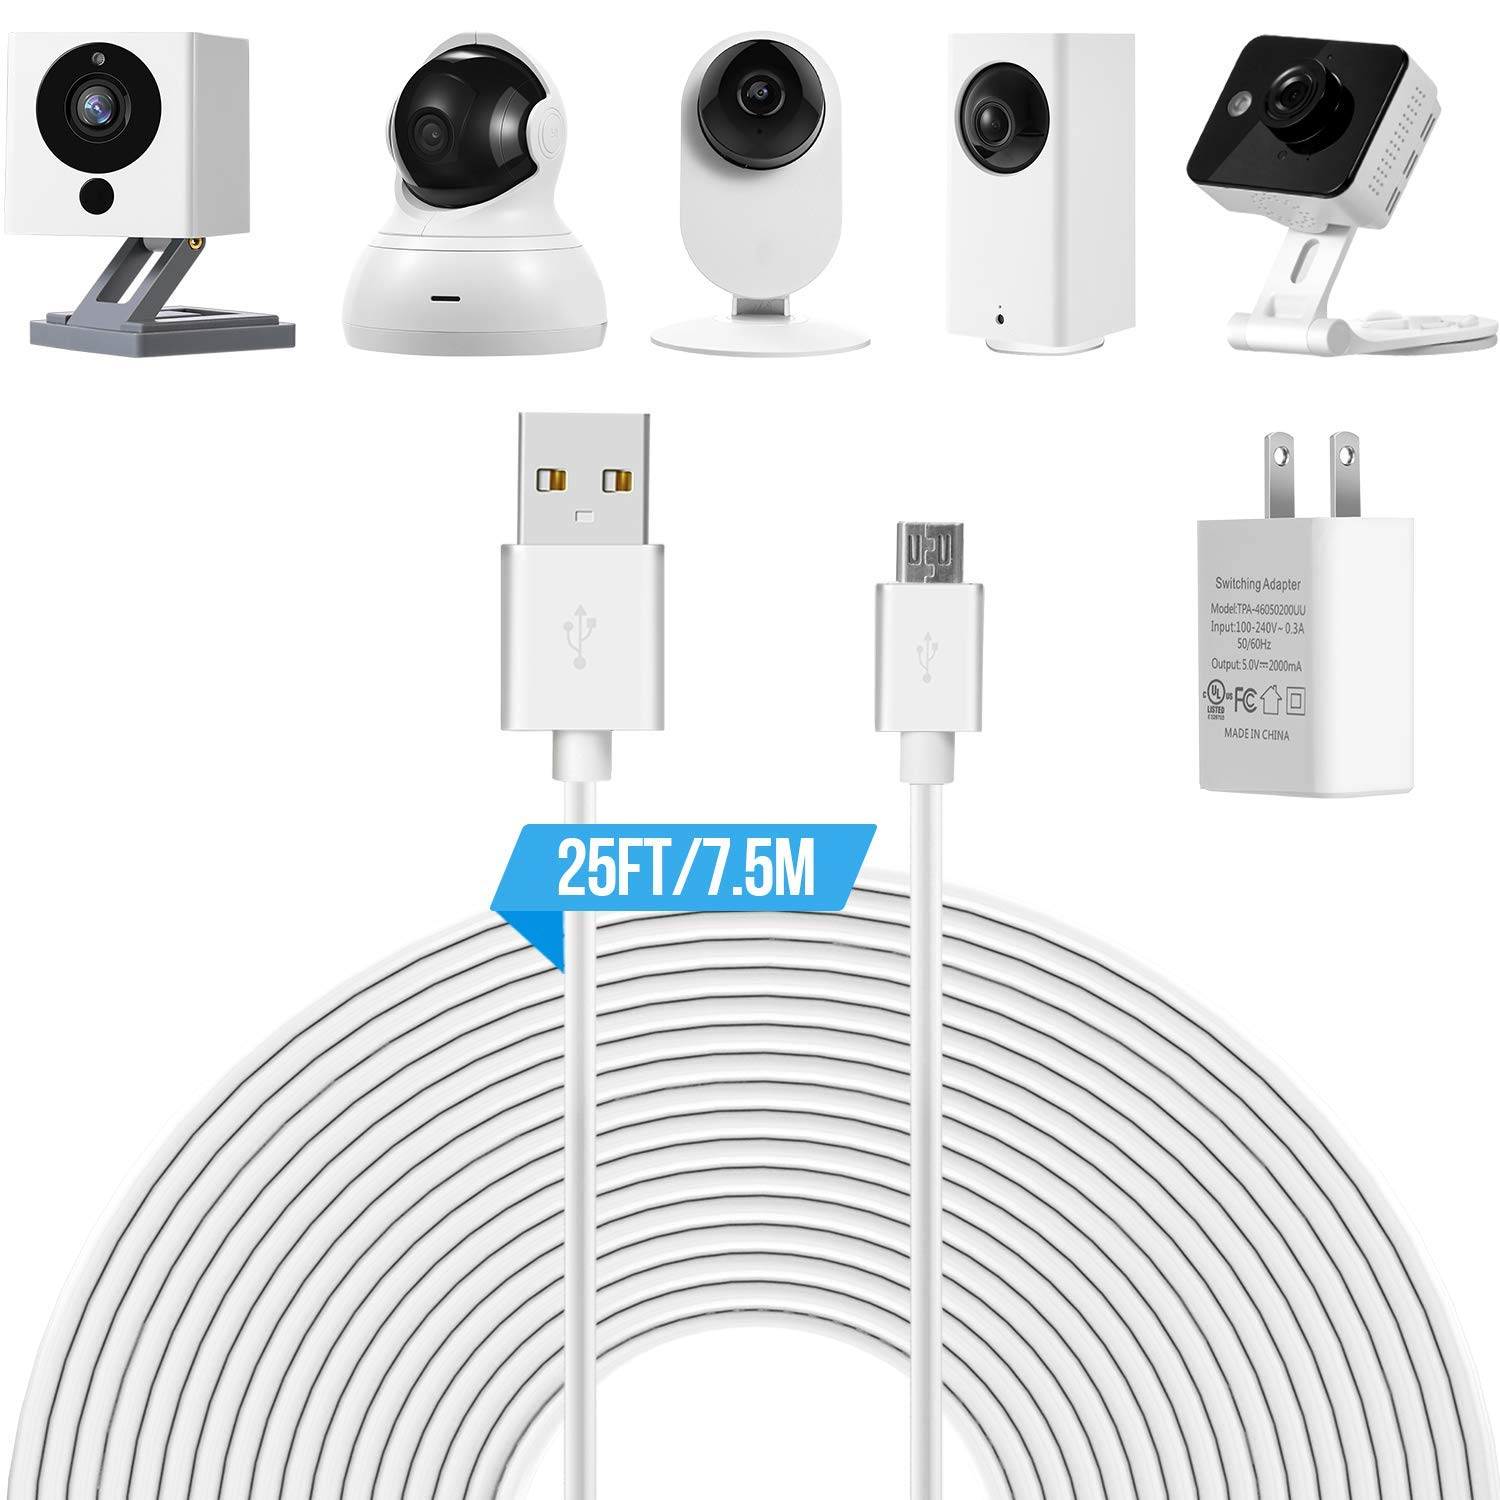 Cheap Zmodo Cable, find Zmodo Cable deals on line at Alibaba com